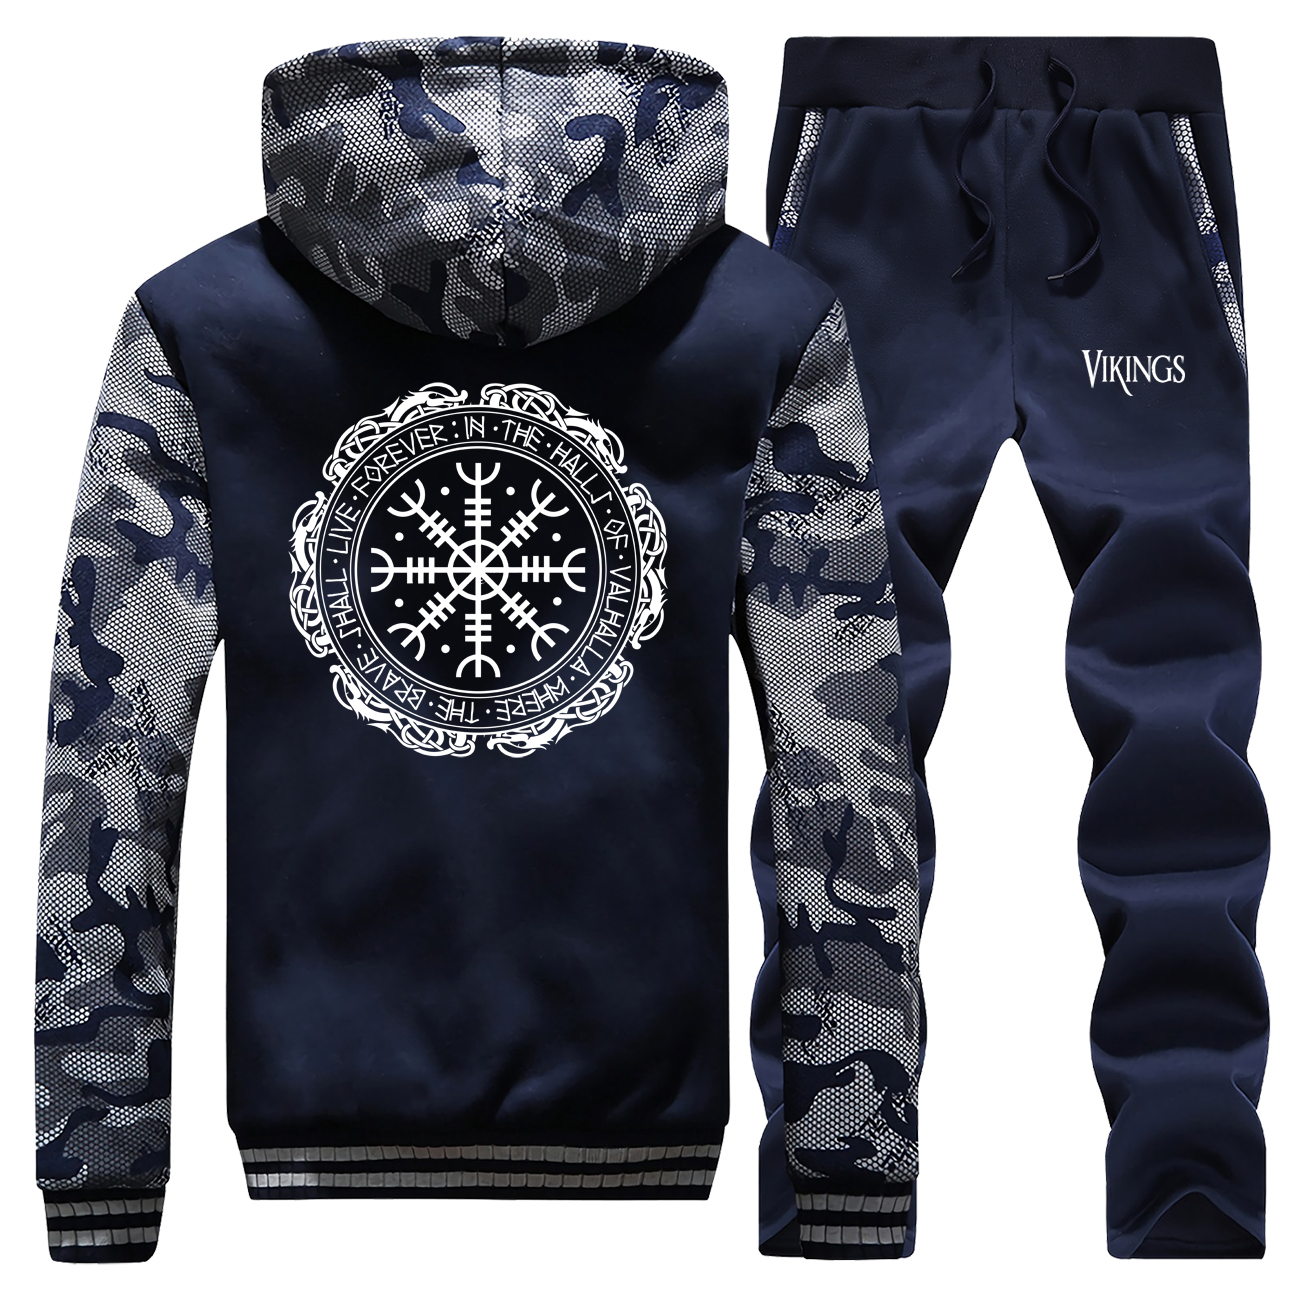 Viking Valhalla Odin Coat Camouflage Tracksuit Men Fashion Warm Thick Hoodies Sweatshirt Suit Winter Jacket+Pants 2 Piece Sets